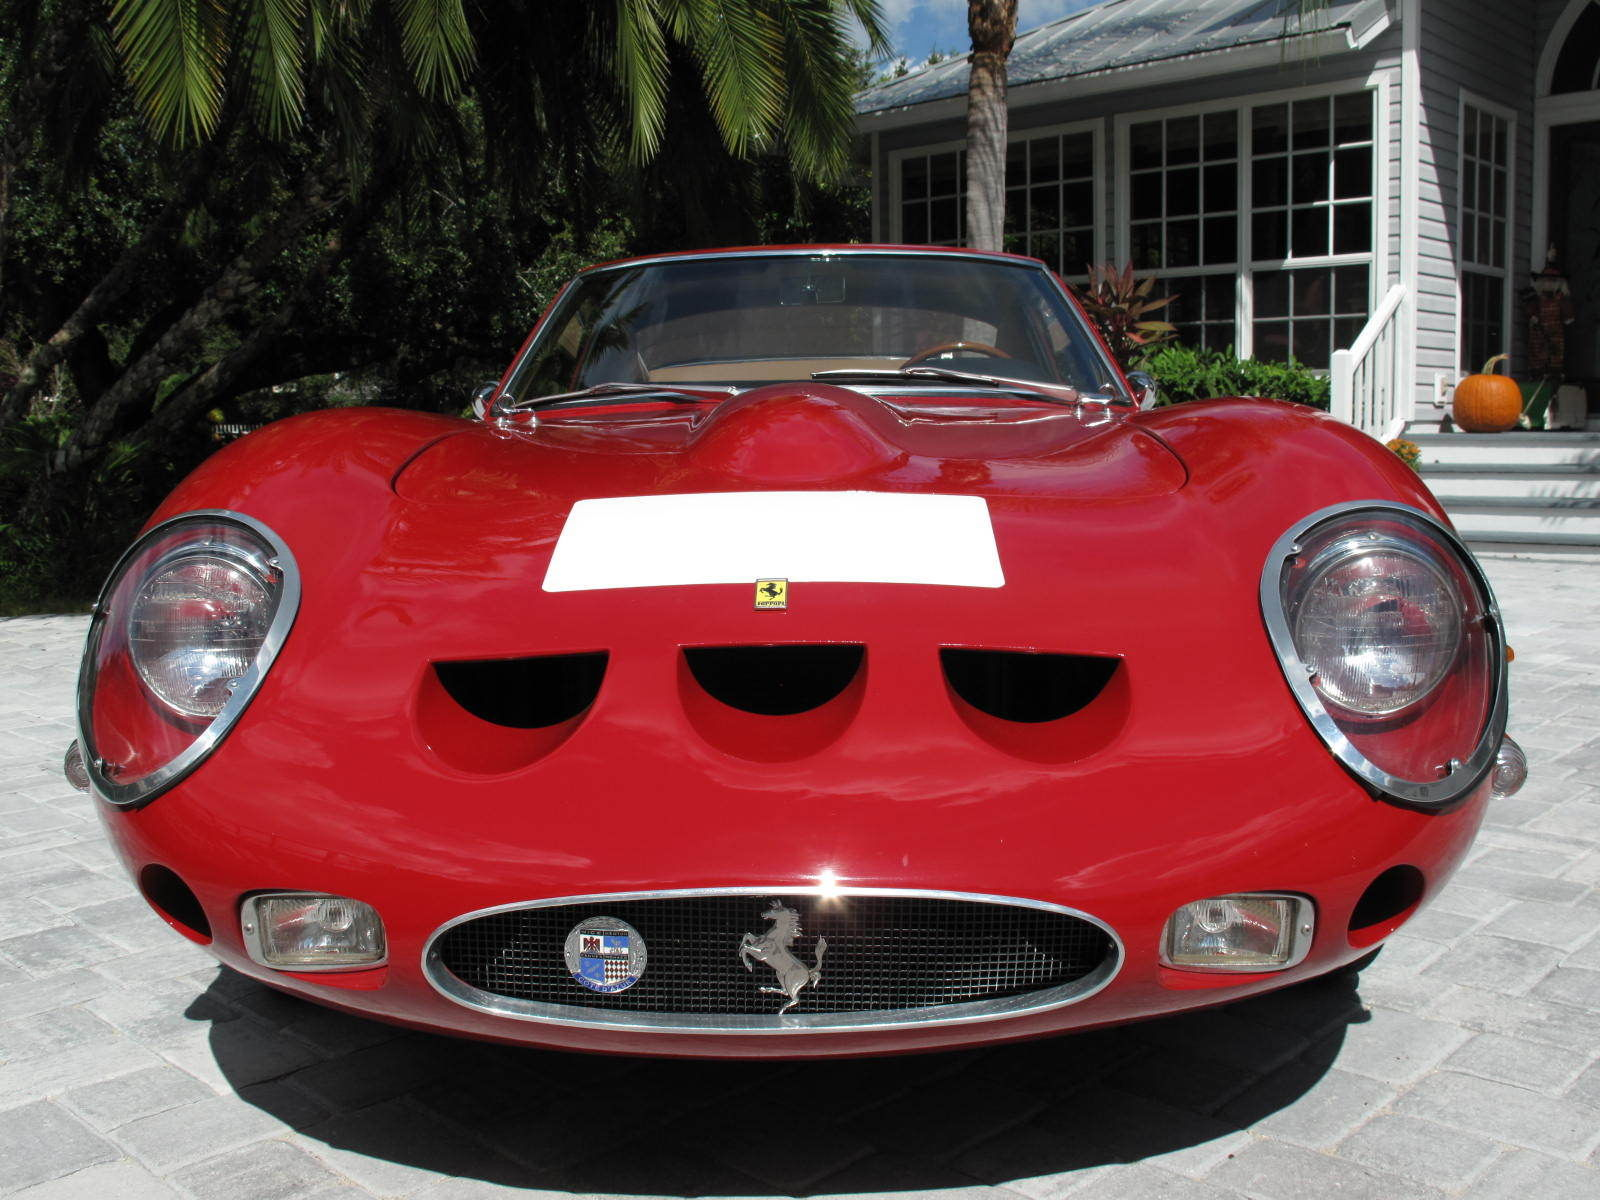 1962 ferrari other 250 gto for sale in sarasota florida united. Cars Review. Best American Auto & Cars Review